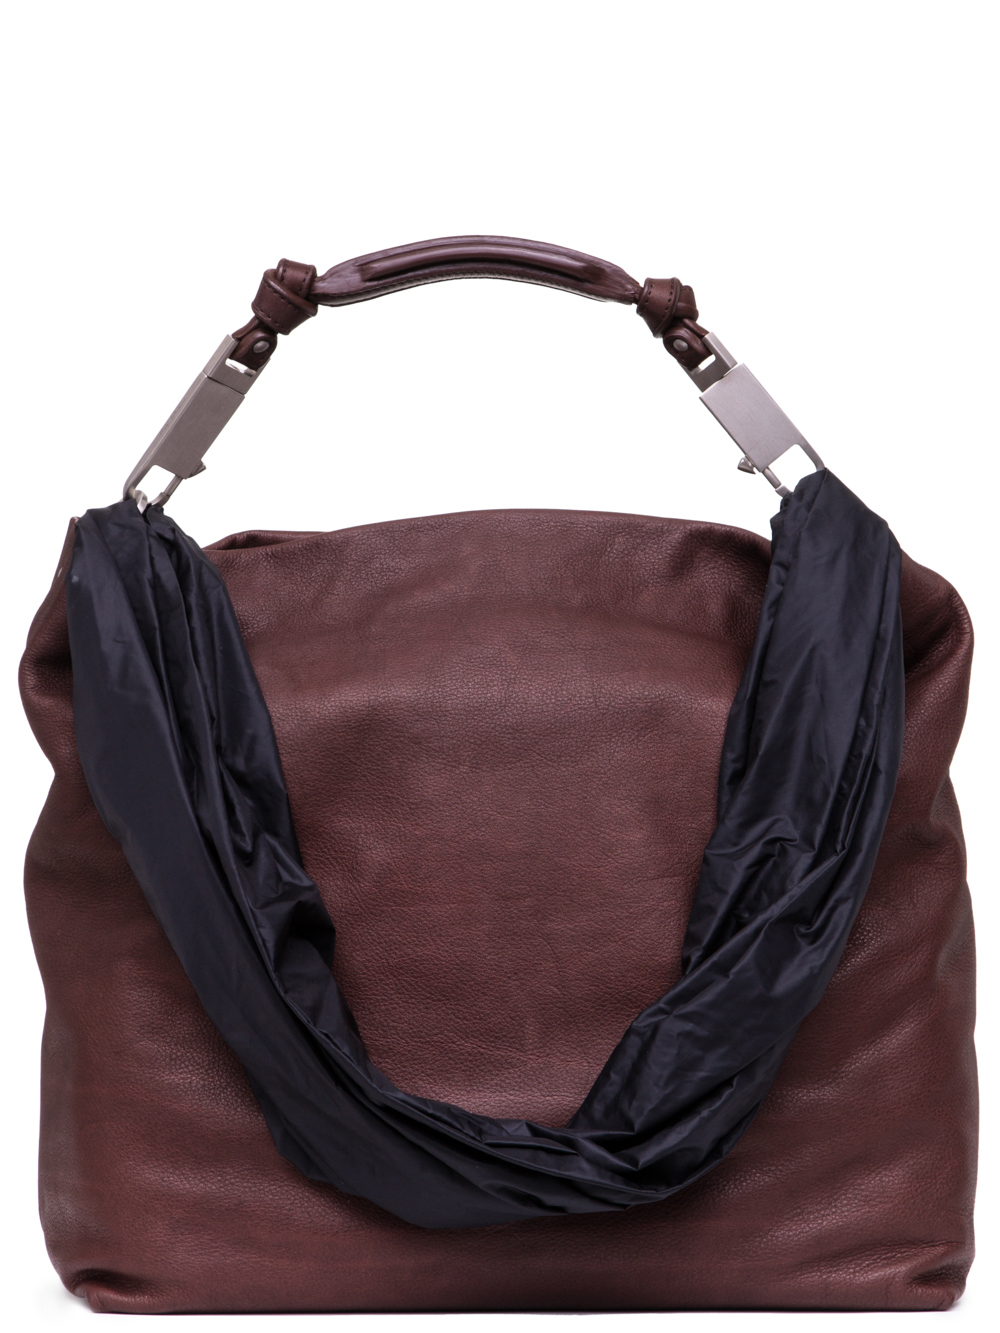 RICK OWENS SS19 BABEL MEDIUM BALOON BAG IN BLOOD RED CALF LEATHER